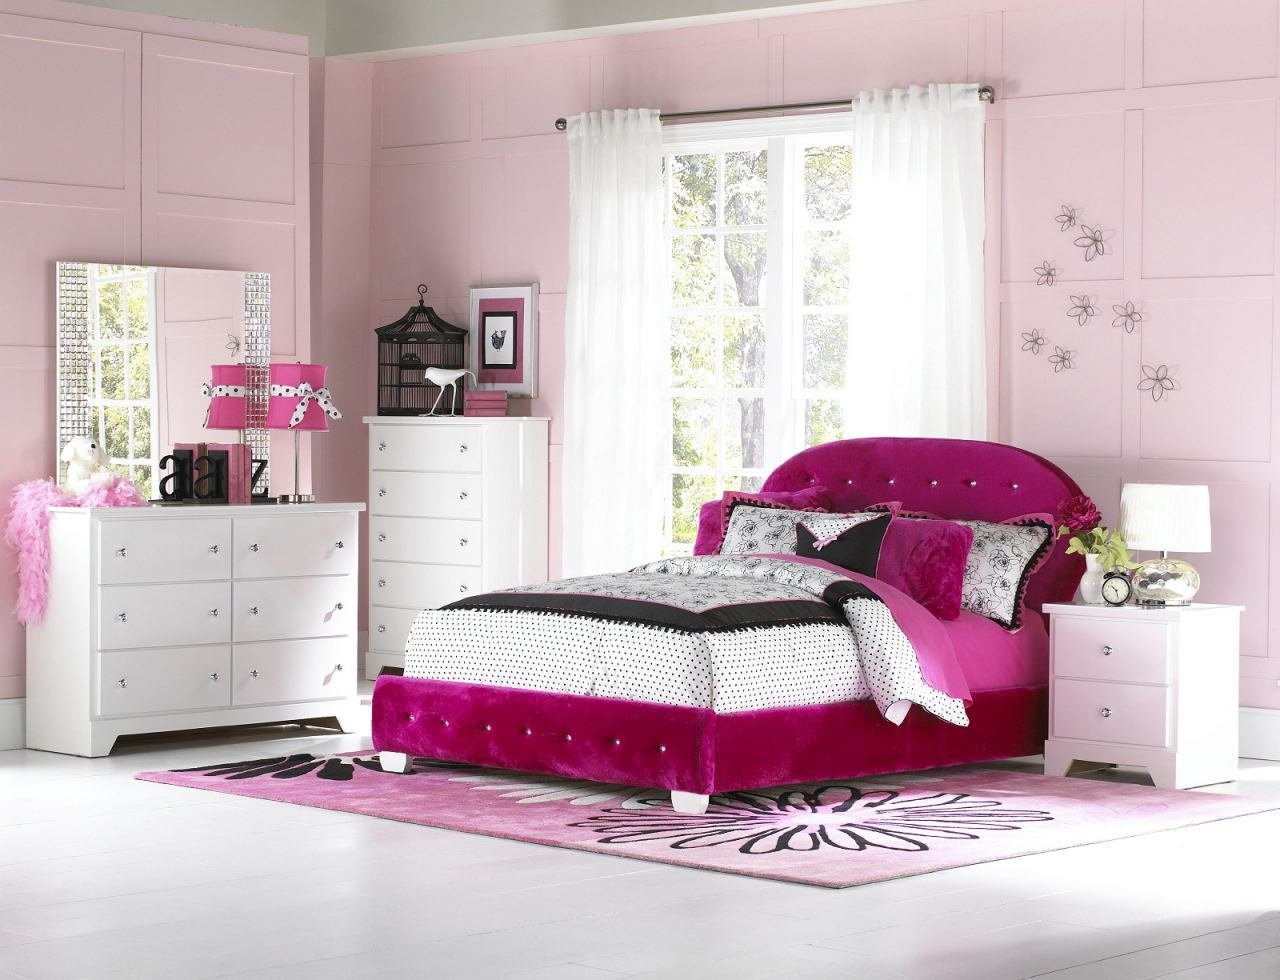 Best Pink Bedroom Set Upholstered Twin Bed Pink Upholstered With Pictures